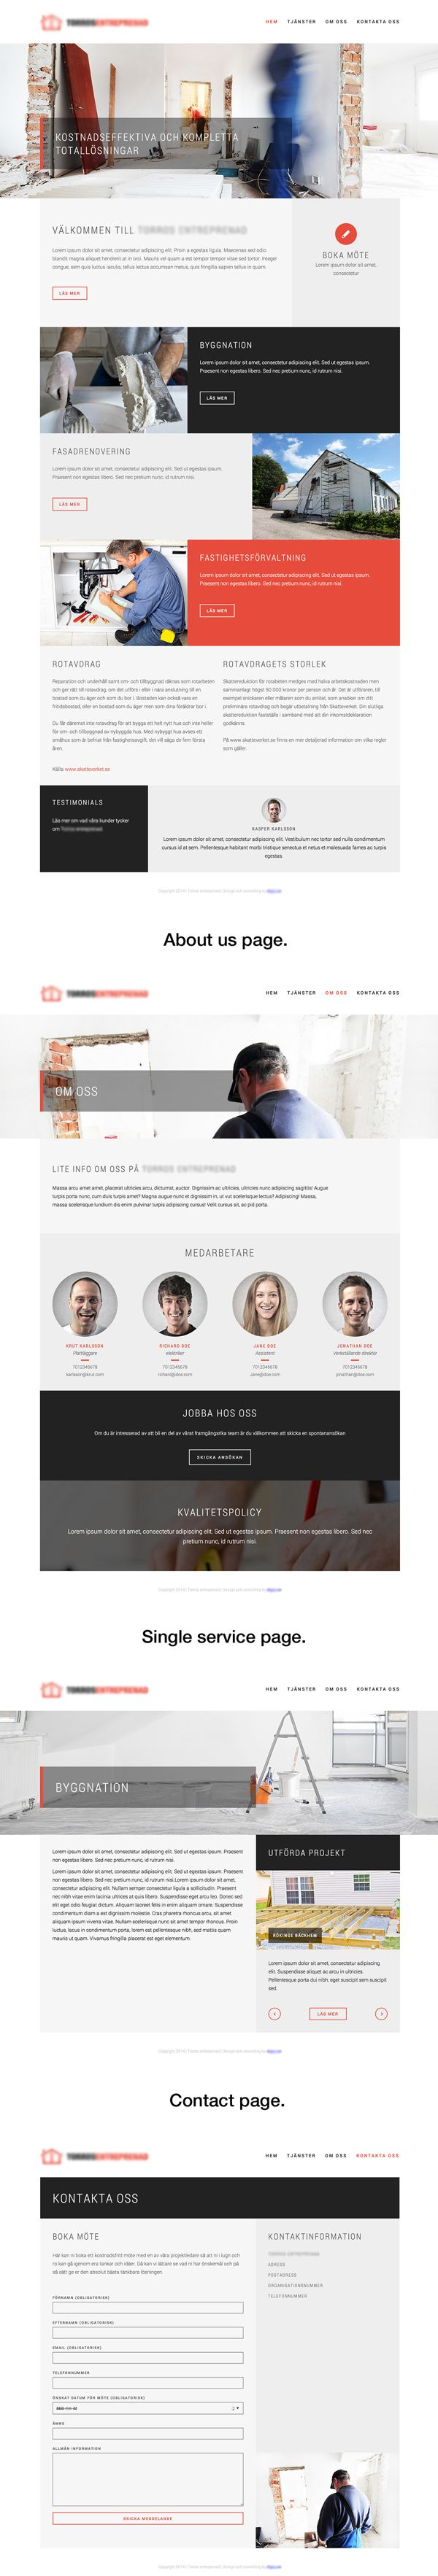 Construction company by jesper landberg, via Behance